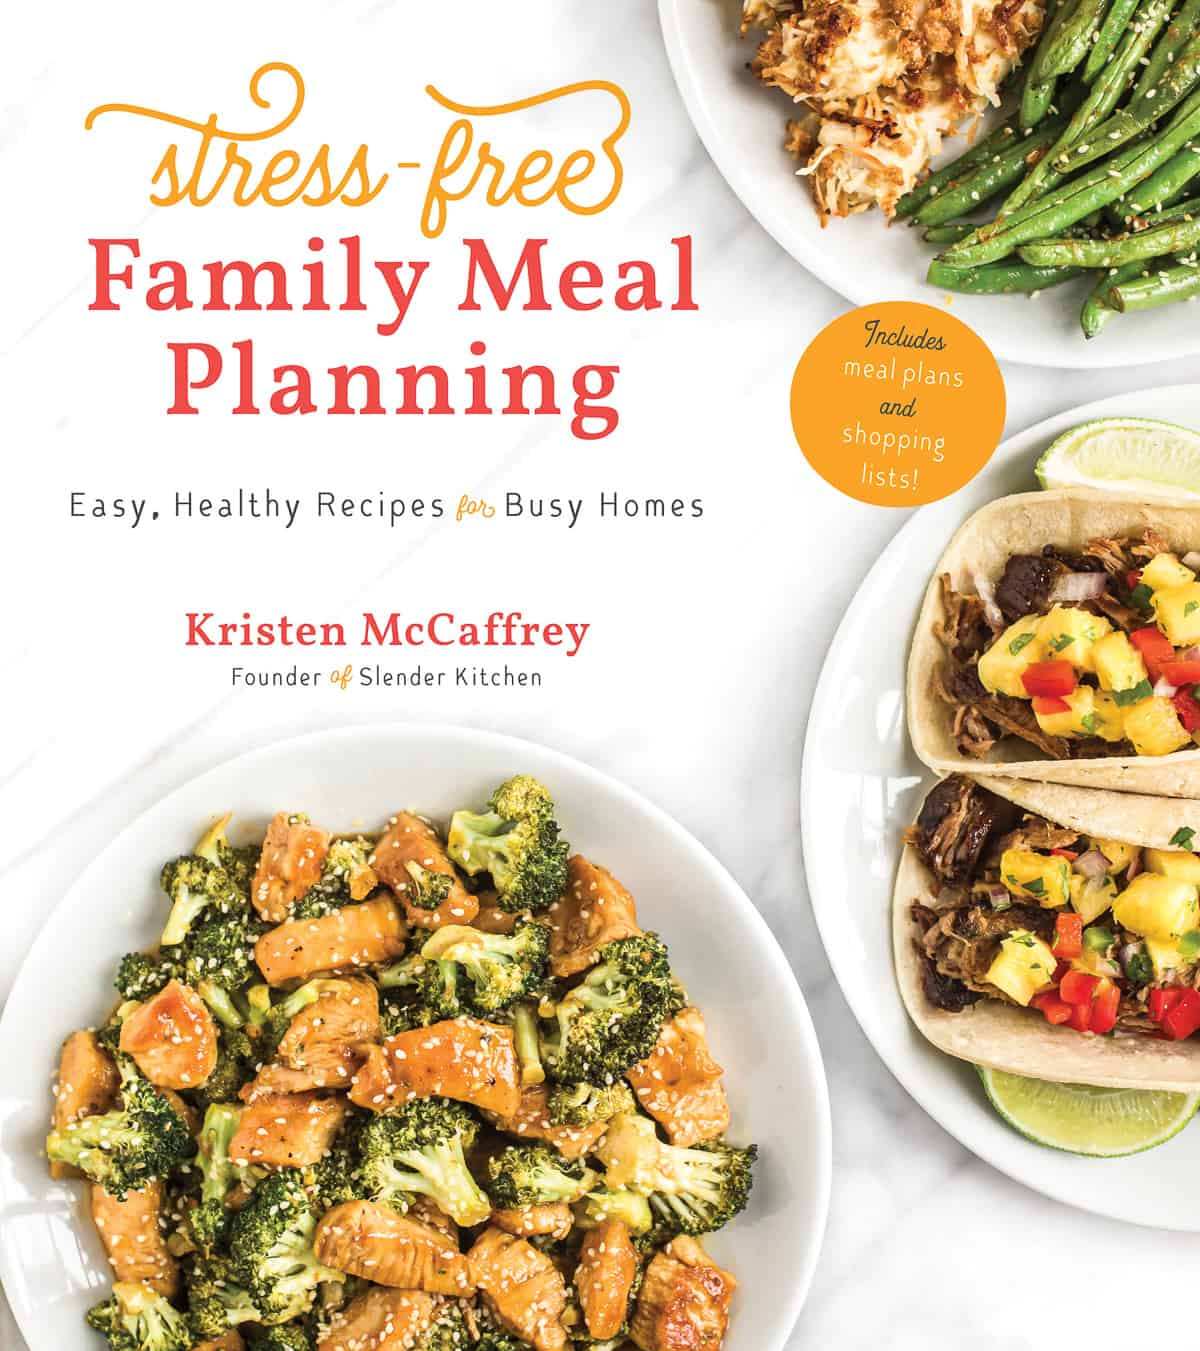 The cover of Stress-Free Family Meal Planning by Kristen McCaffrey